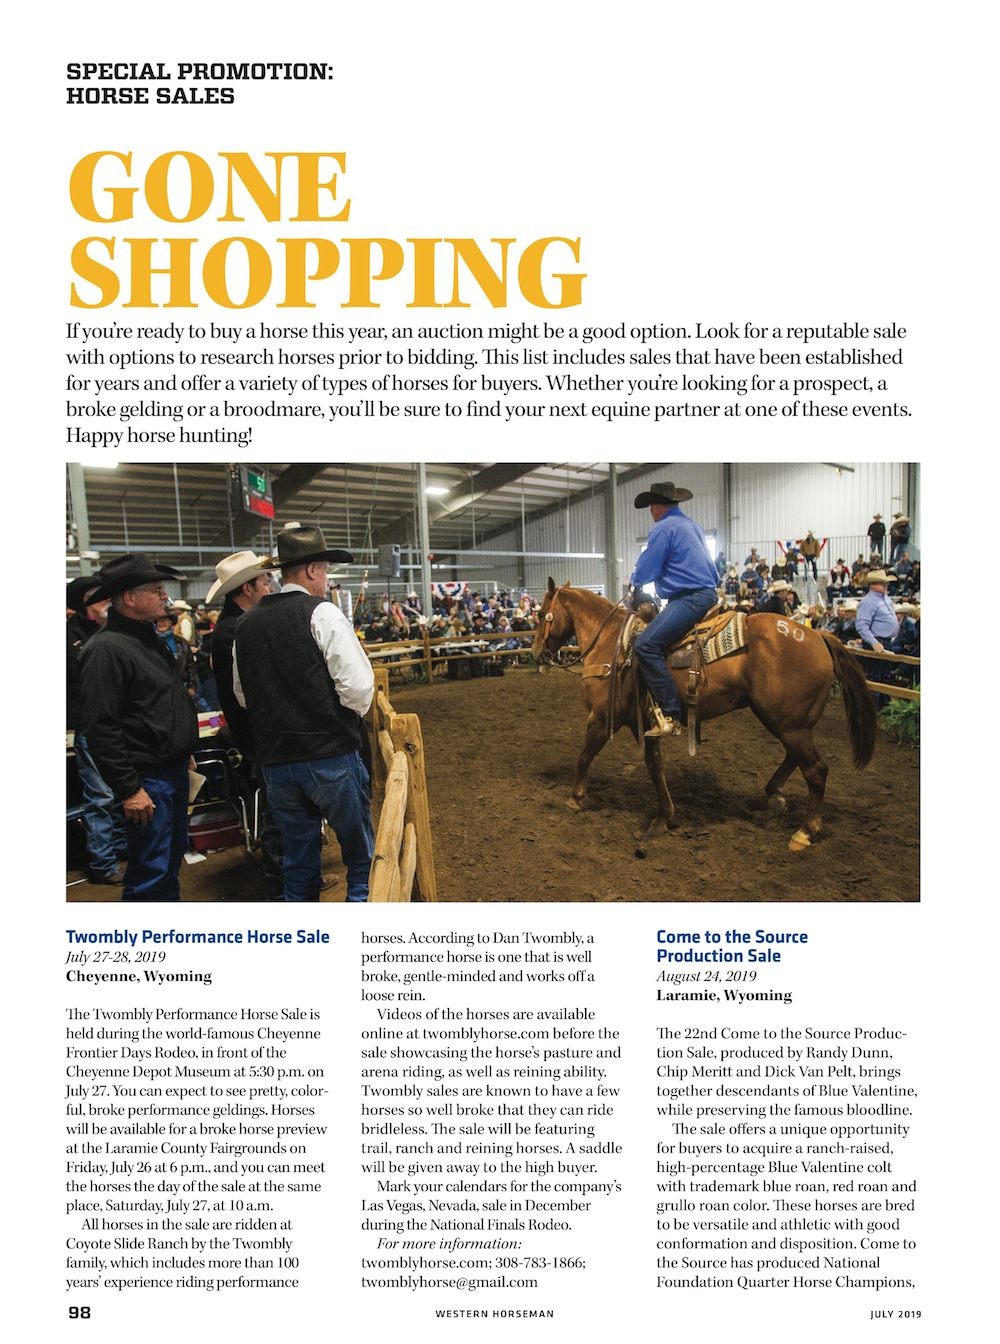 horse sales special promotions page from Western Horseman magazine